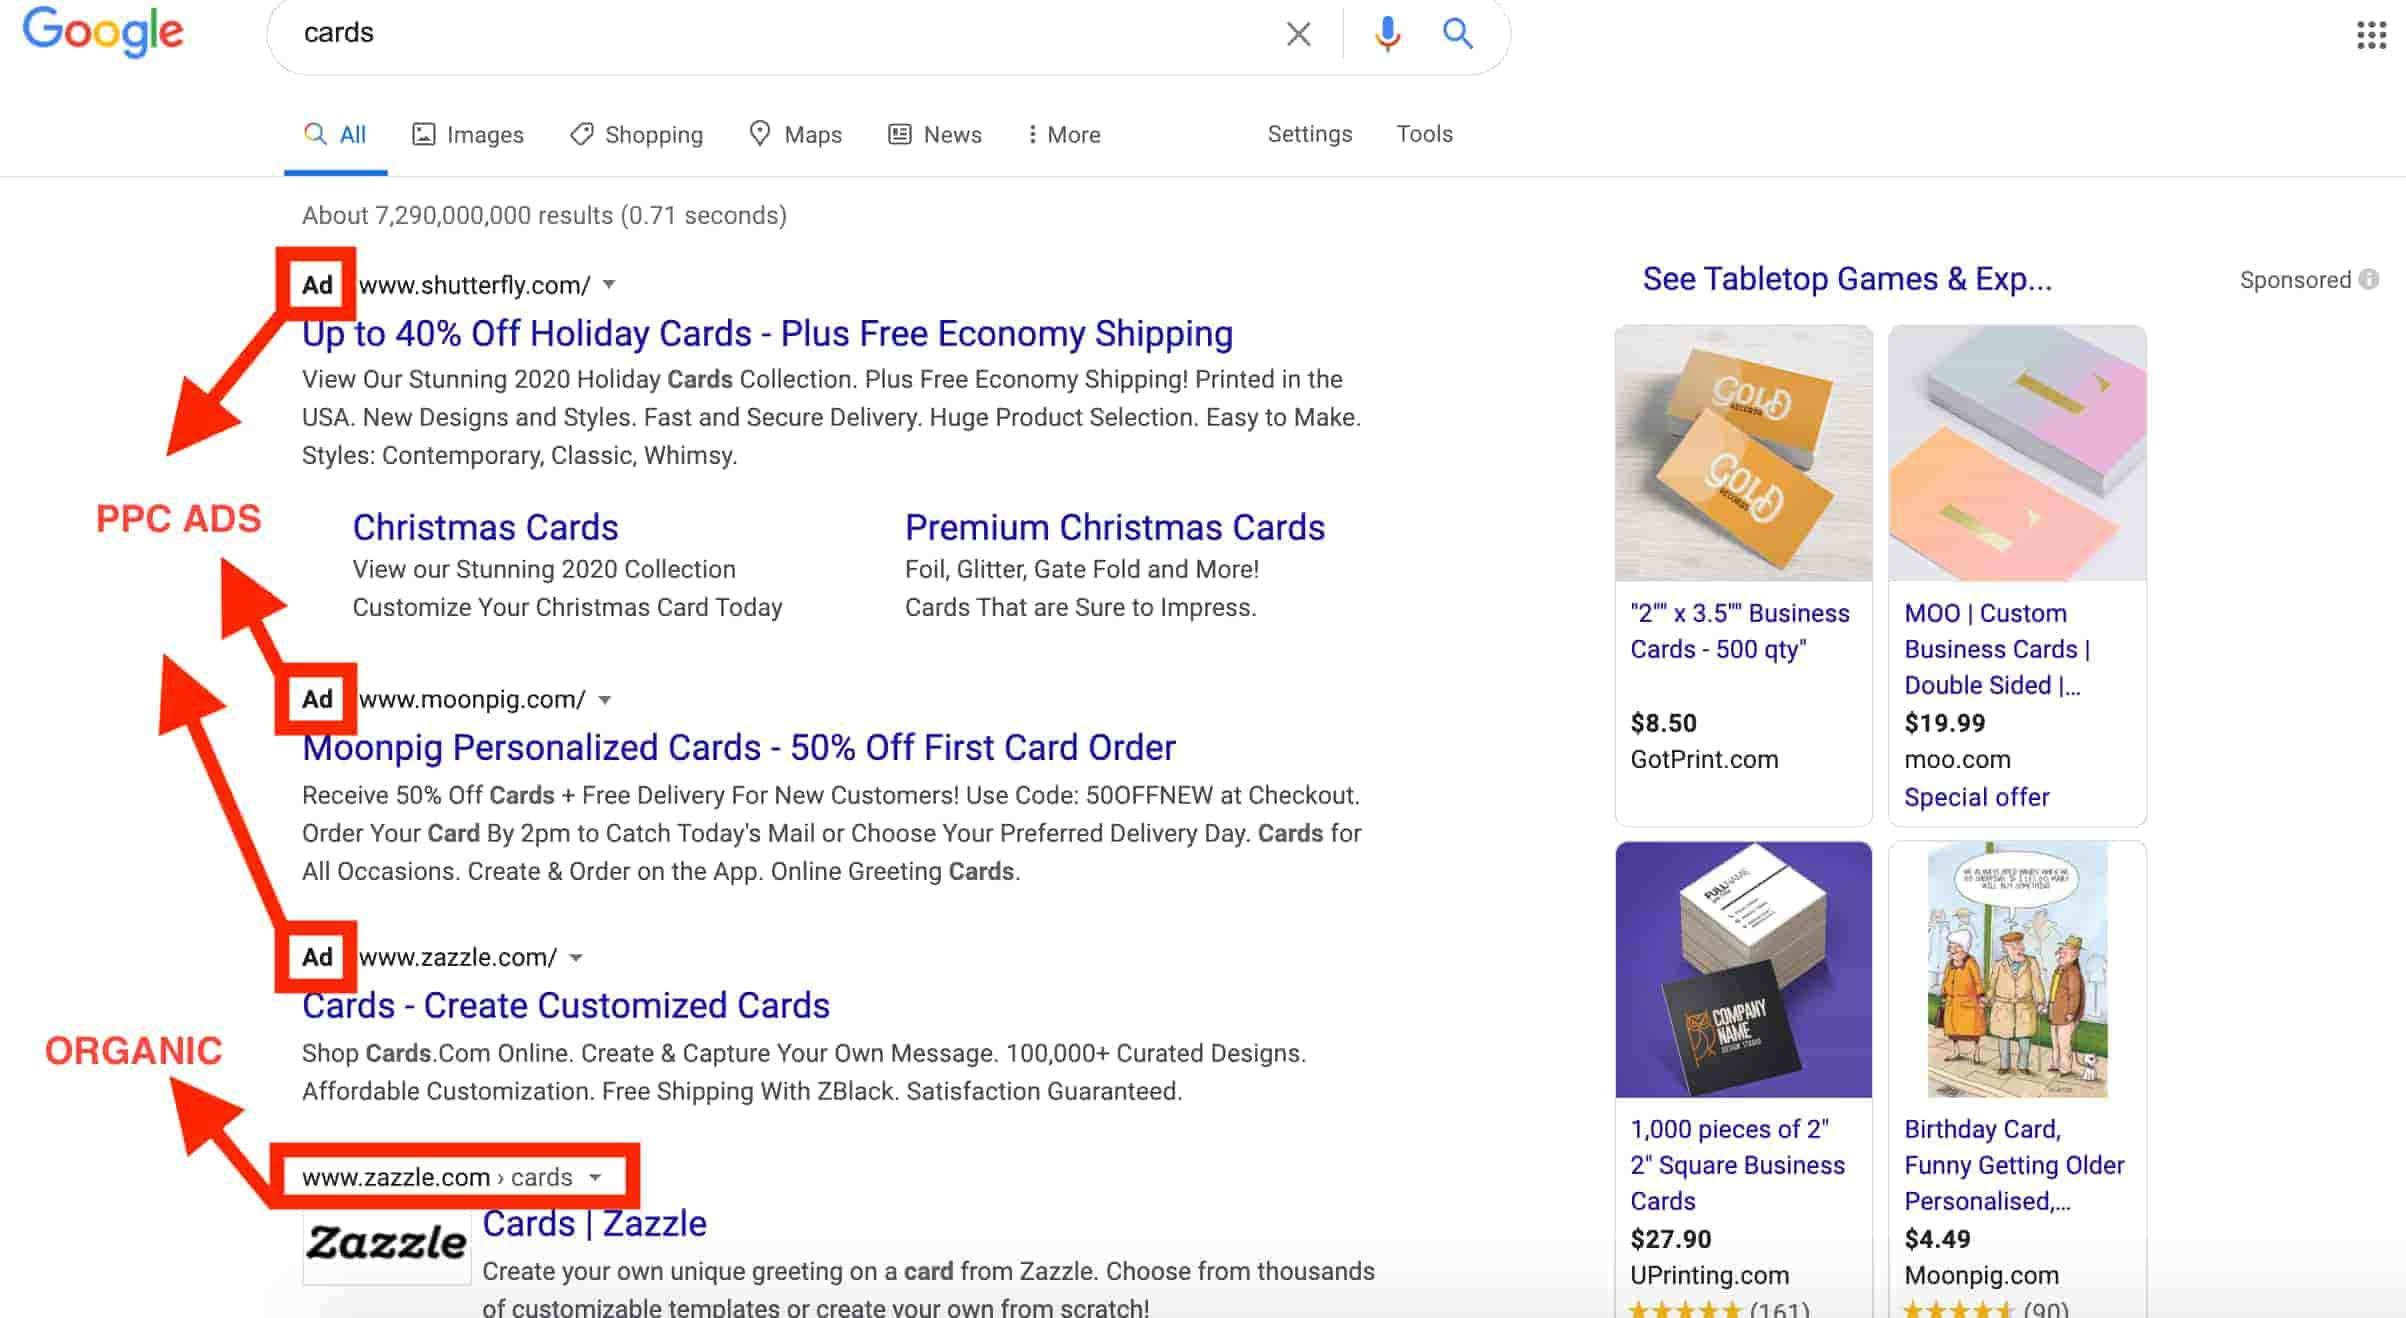 example of paid vs organic ads